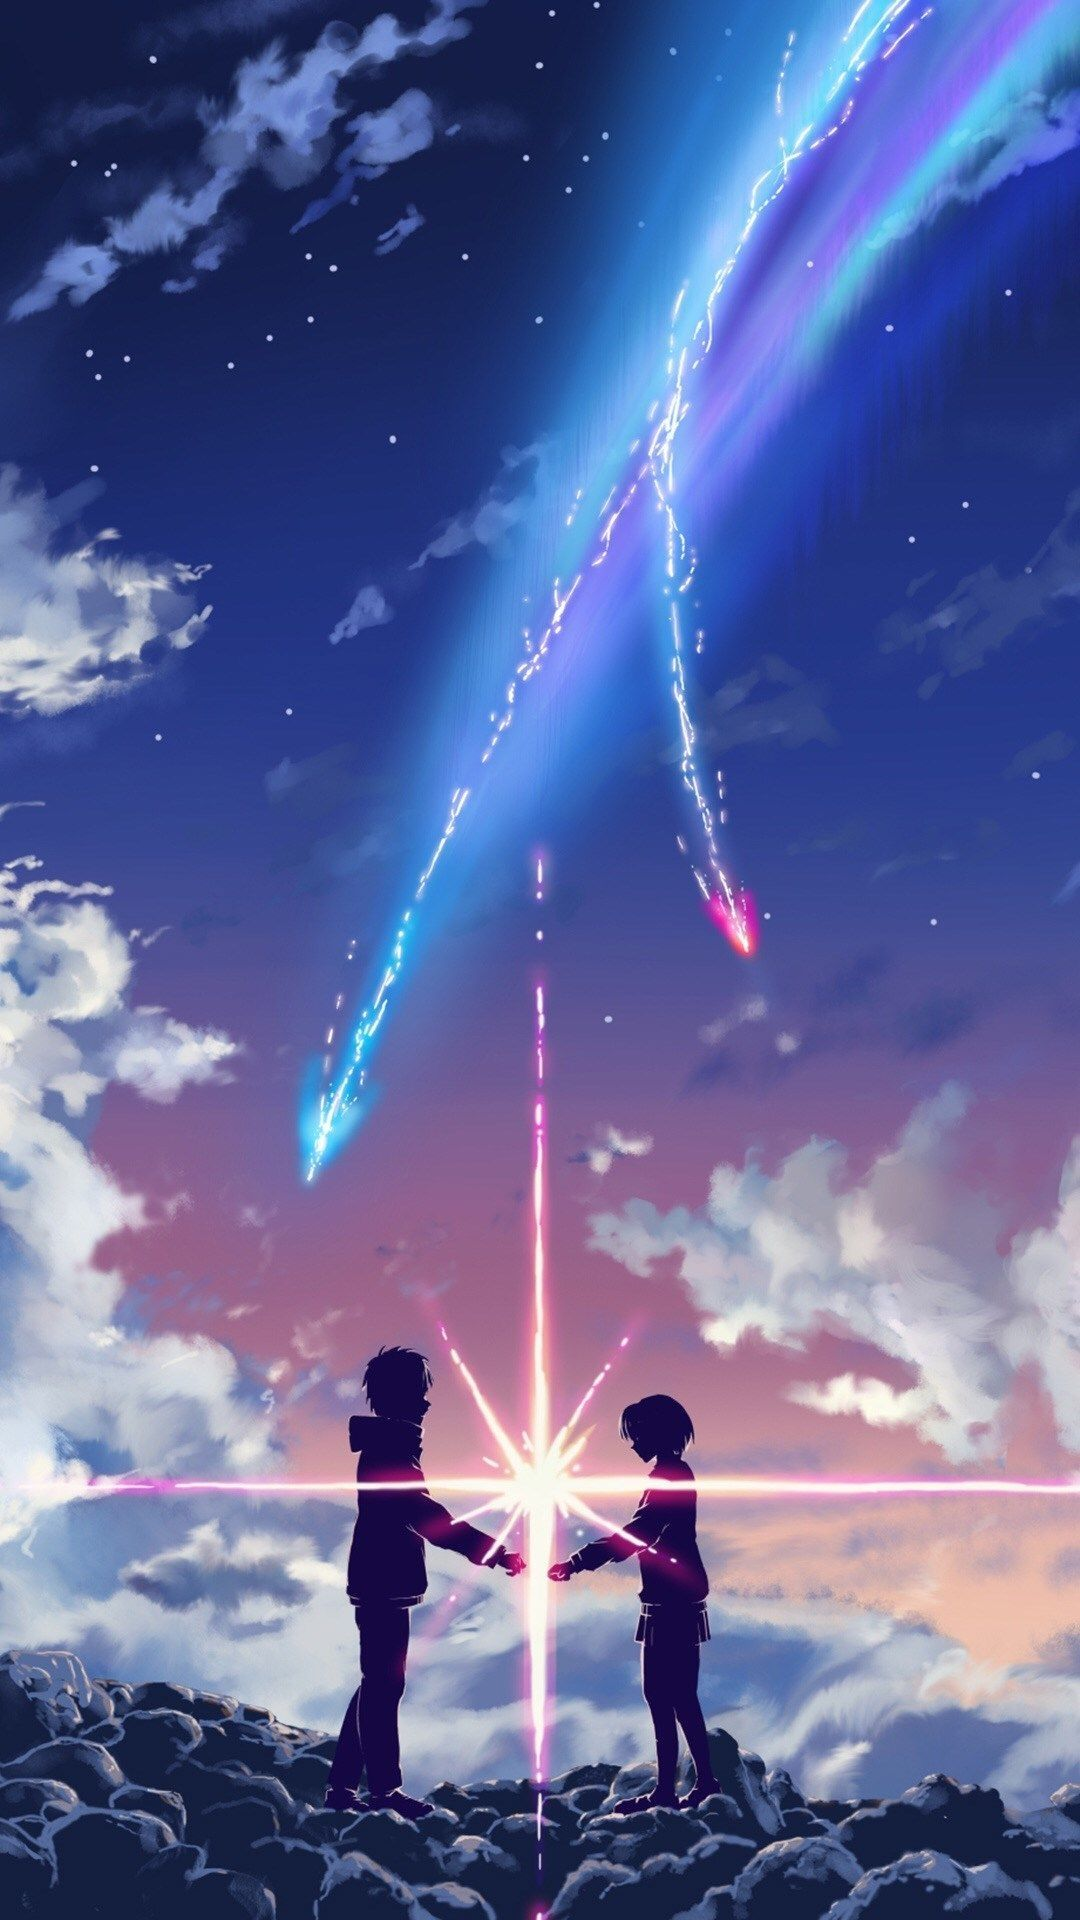 42 Aesthetic Wallpaper Anime On Wallpapersafari